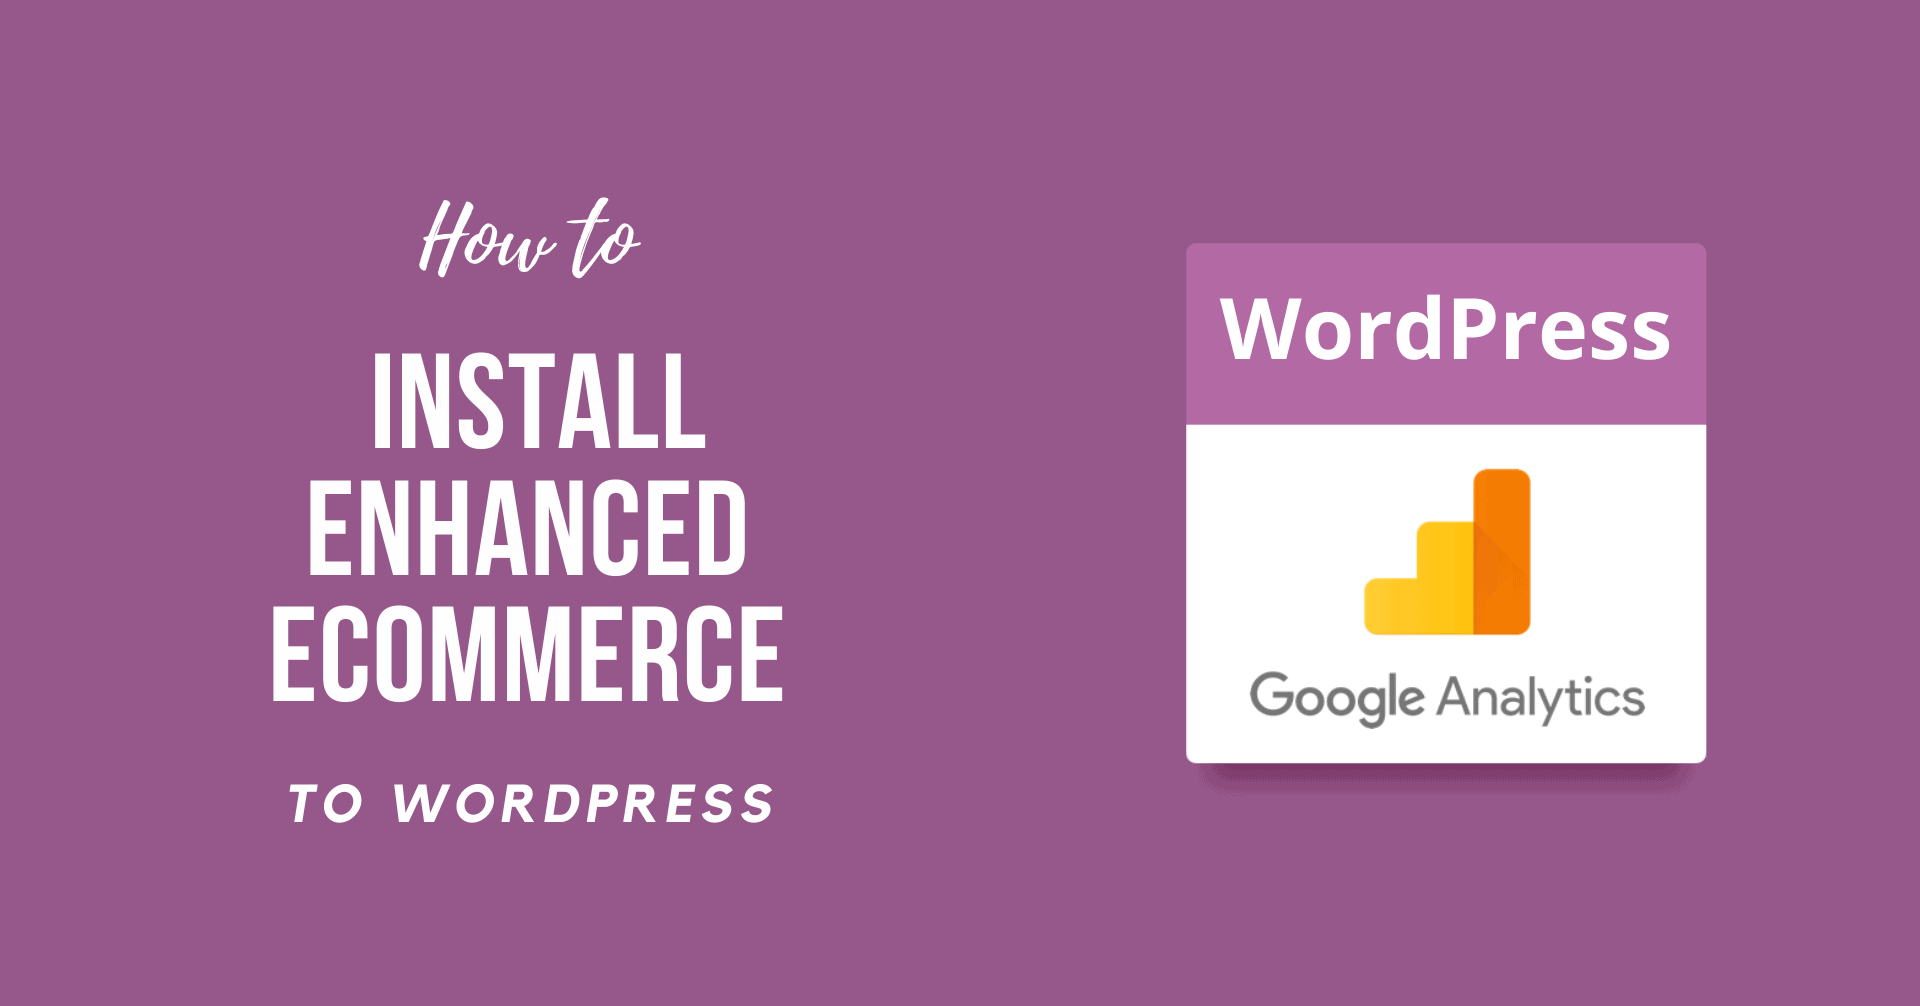 How to Install Enhanced Ecommerce to WordPress